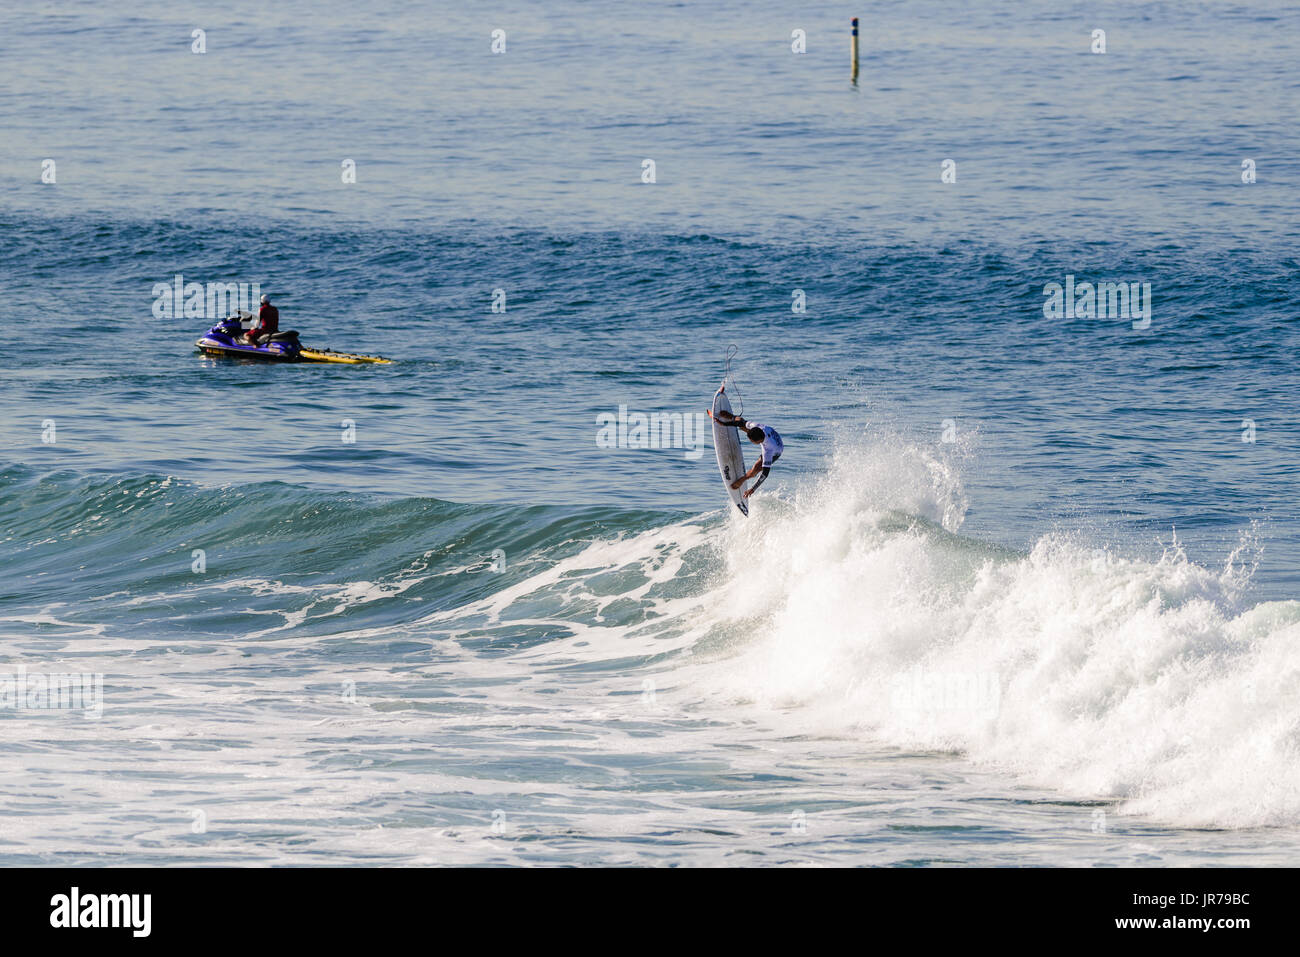 Huntington Beach, USA. 03 August, 2017. Surfer Josh Moniz launches one of multiple airs which seem him through round 2 and into round 3 at the 2017 VANS US Open of Surfing. Credit: Benjamin Ginsberg/Alamy Live News. - Stock Image